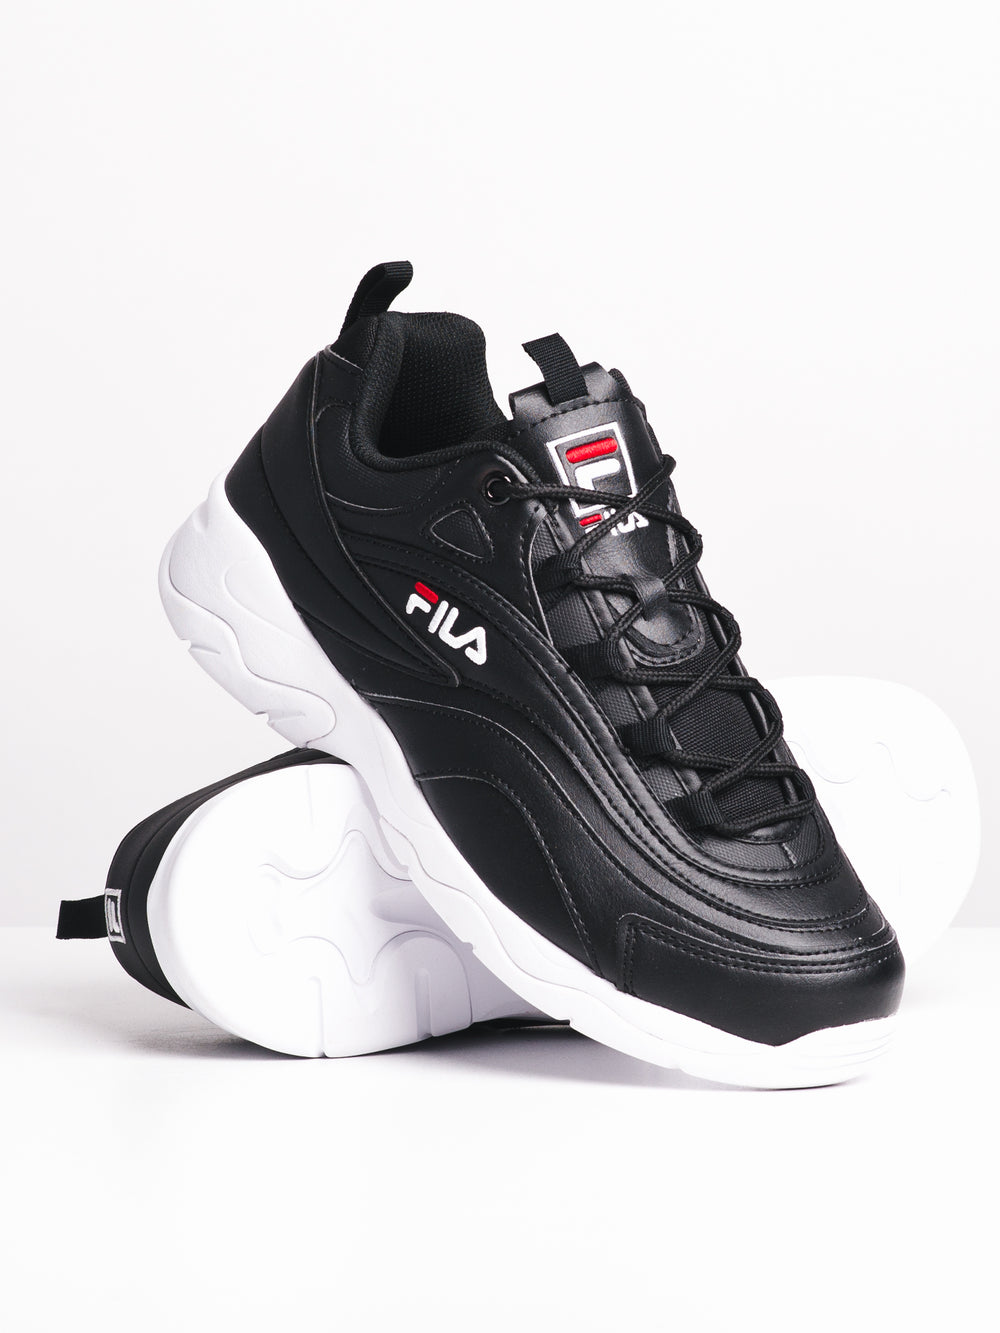 MENS FILA BAY - BLACK/WHITE - CLEARANCE